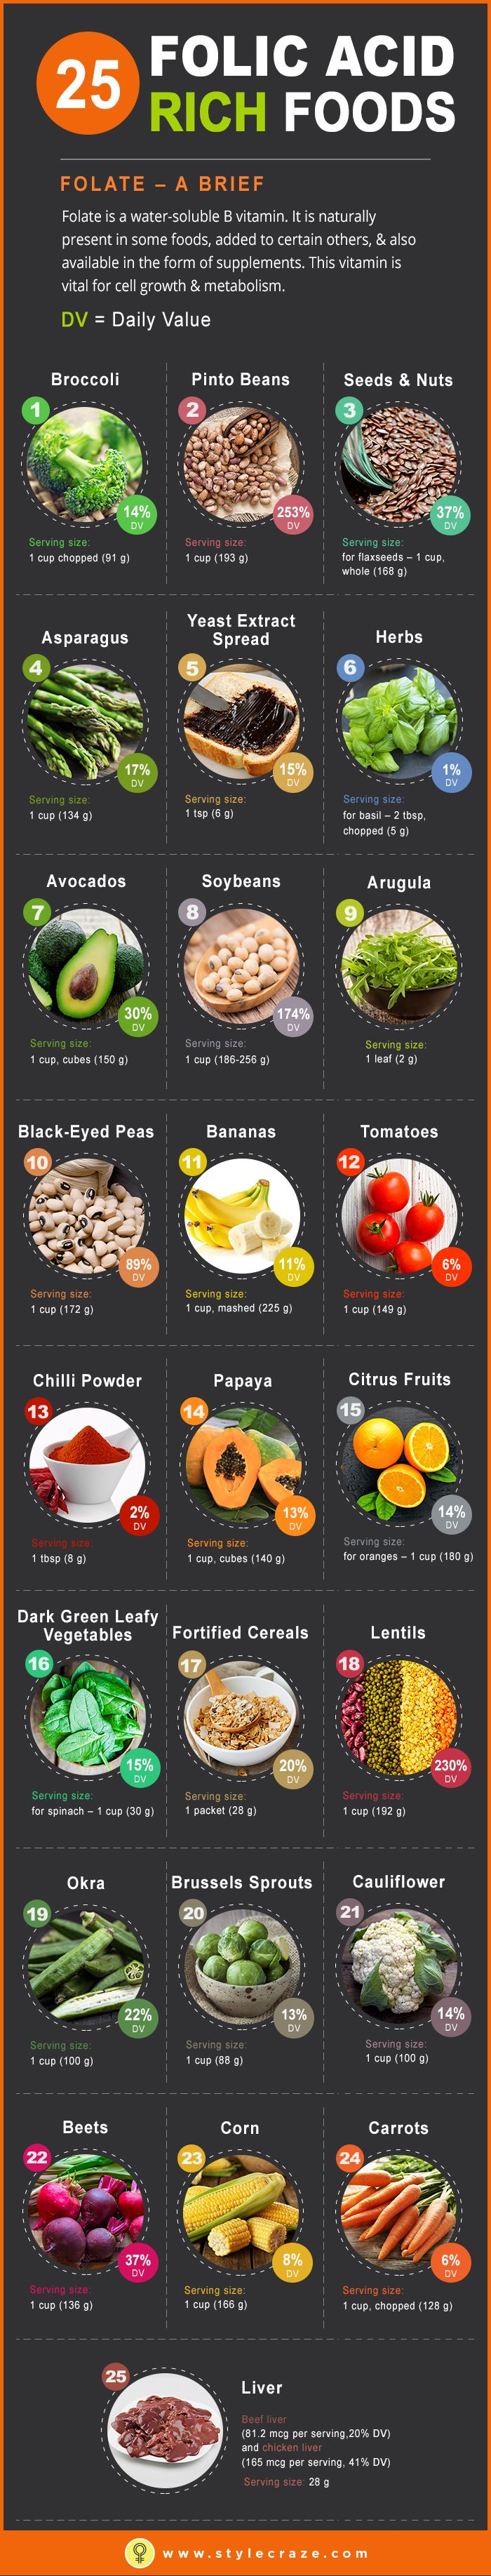 Folic Acid, also known as folate plays a vital role in your diet. Want to know what are the foods high in folic acid? Here we list out top folic acid foods